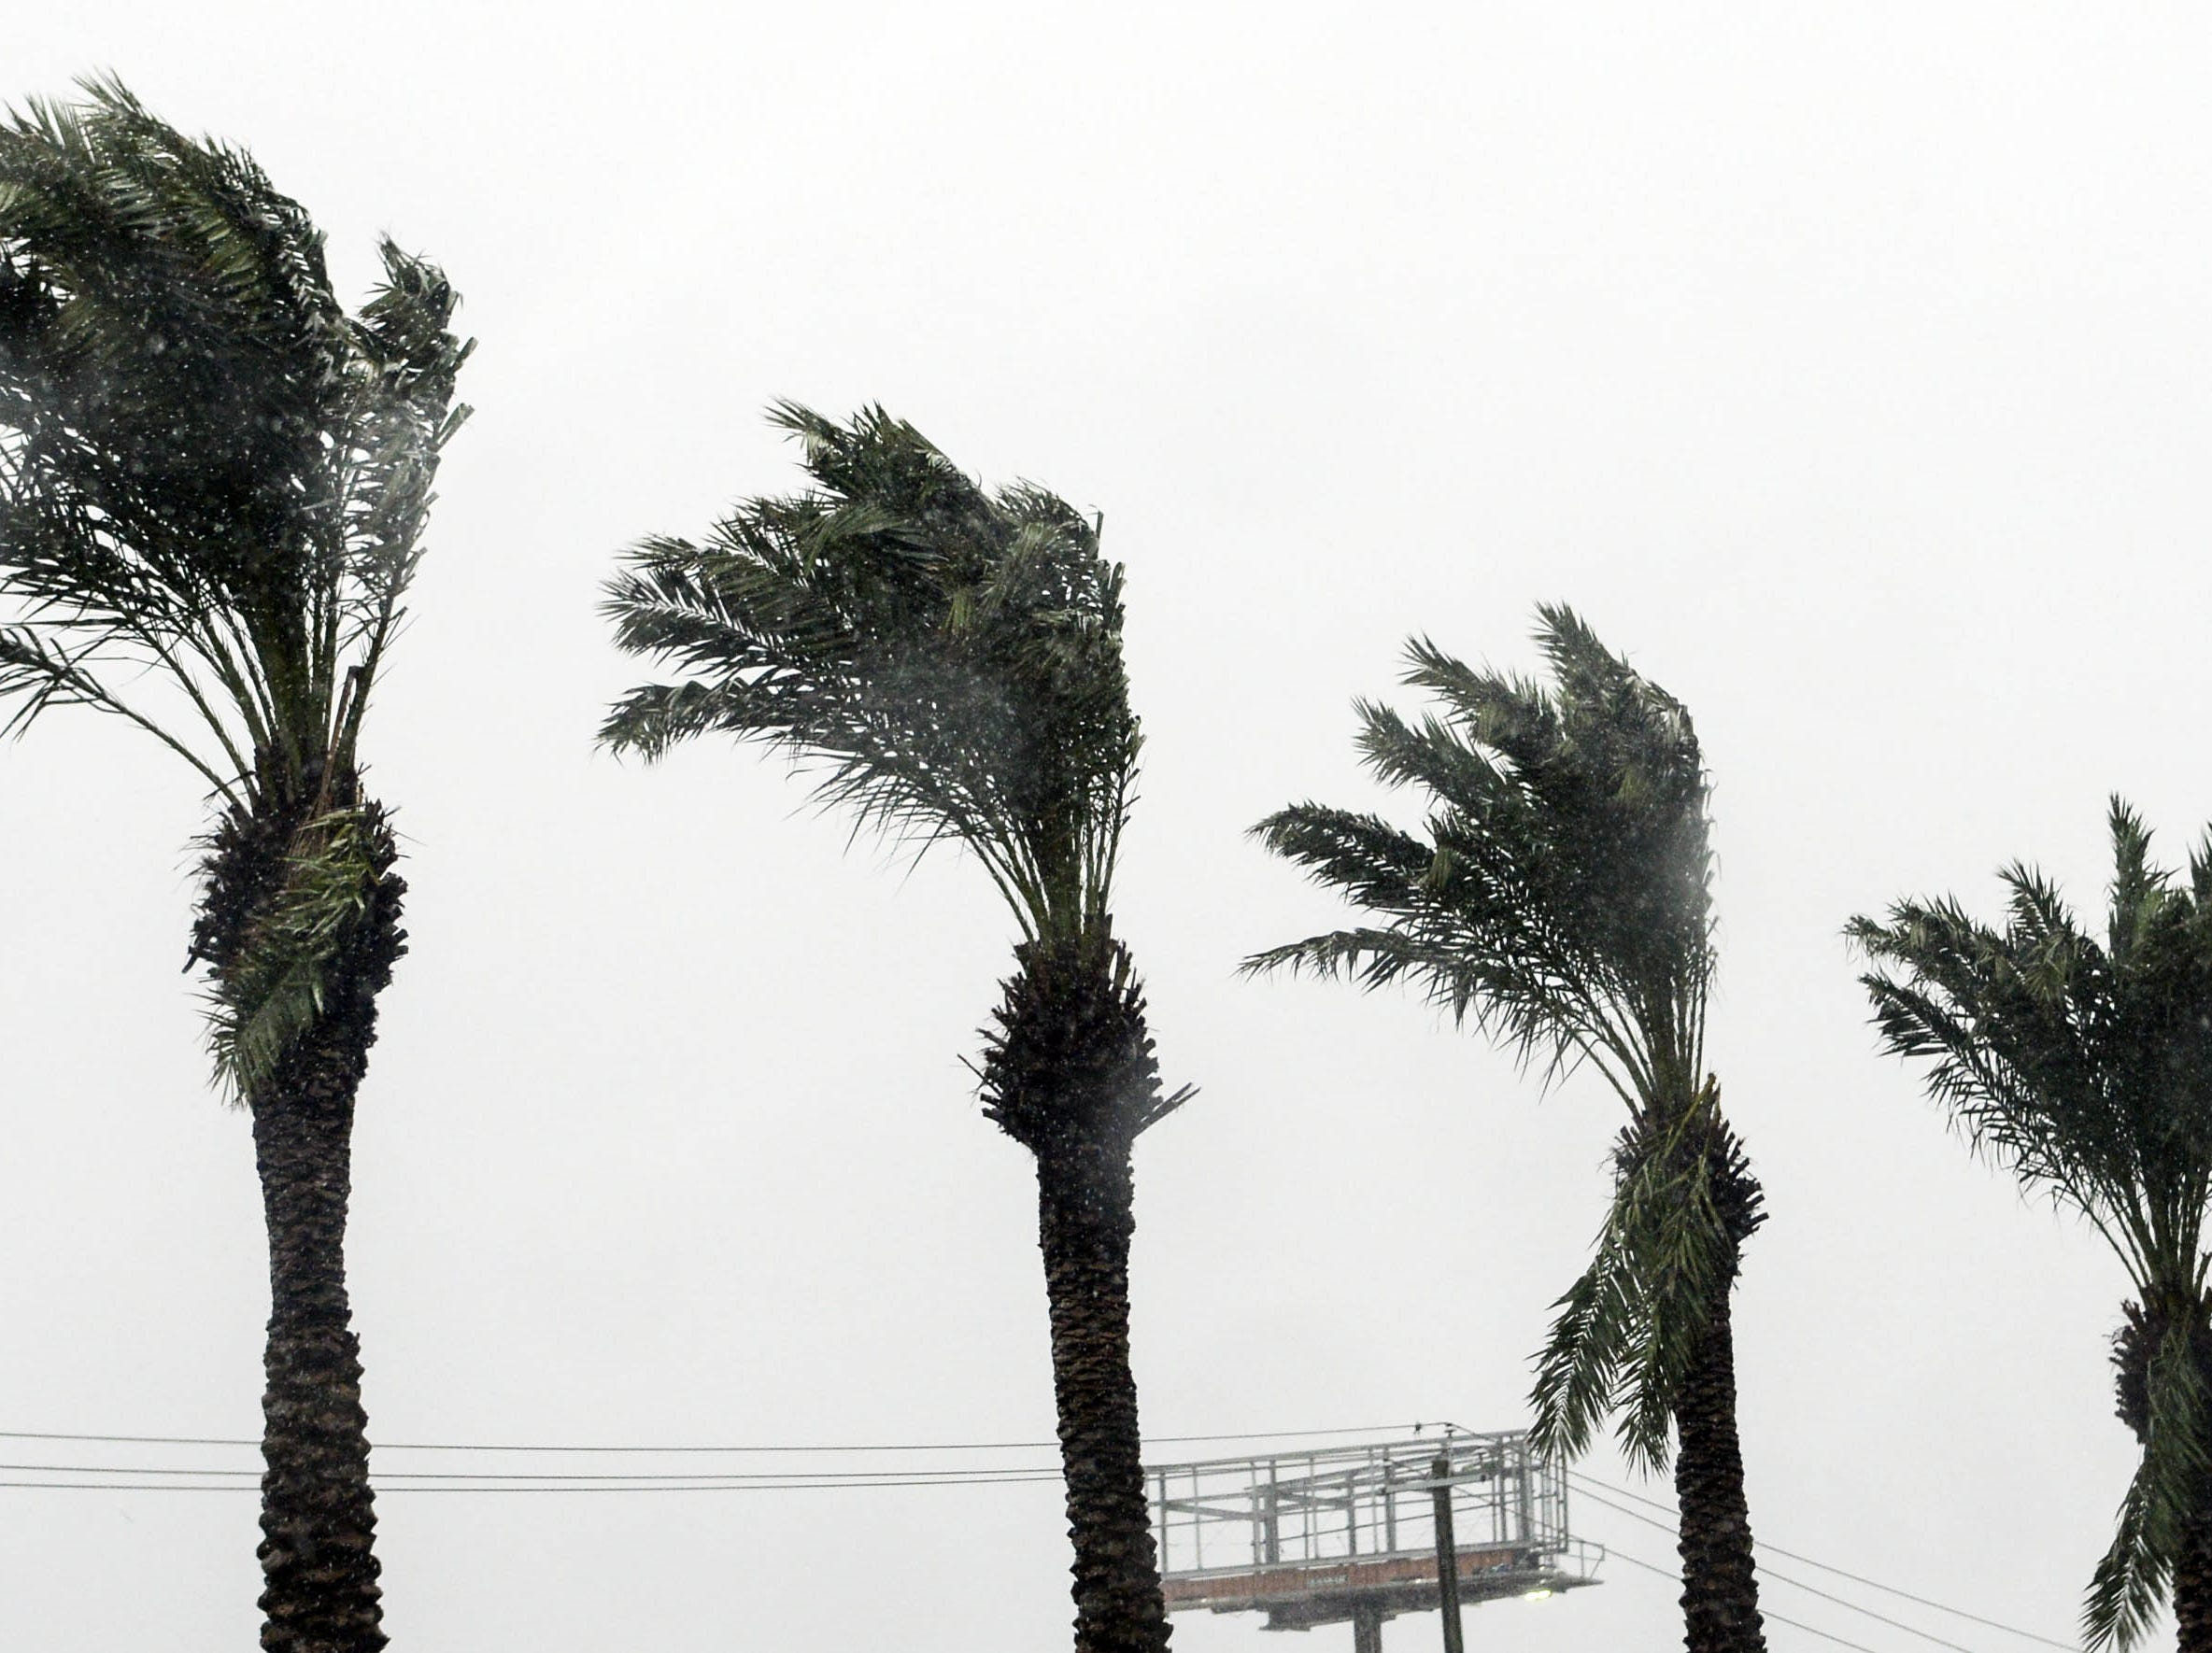 Palm fronds bend in the wind as Hurricane Michael approaches. Mandatory Credit: Craig Bailey/FLORIDA TODAY via USA TODAY NETWORK